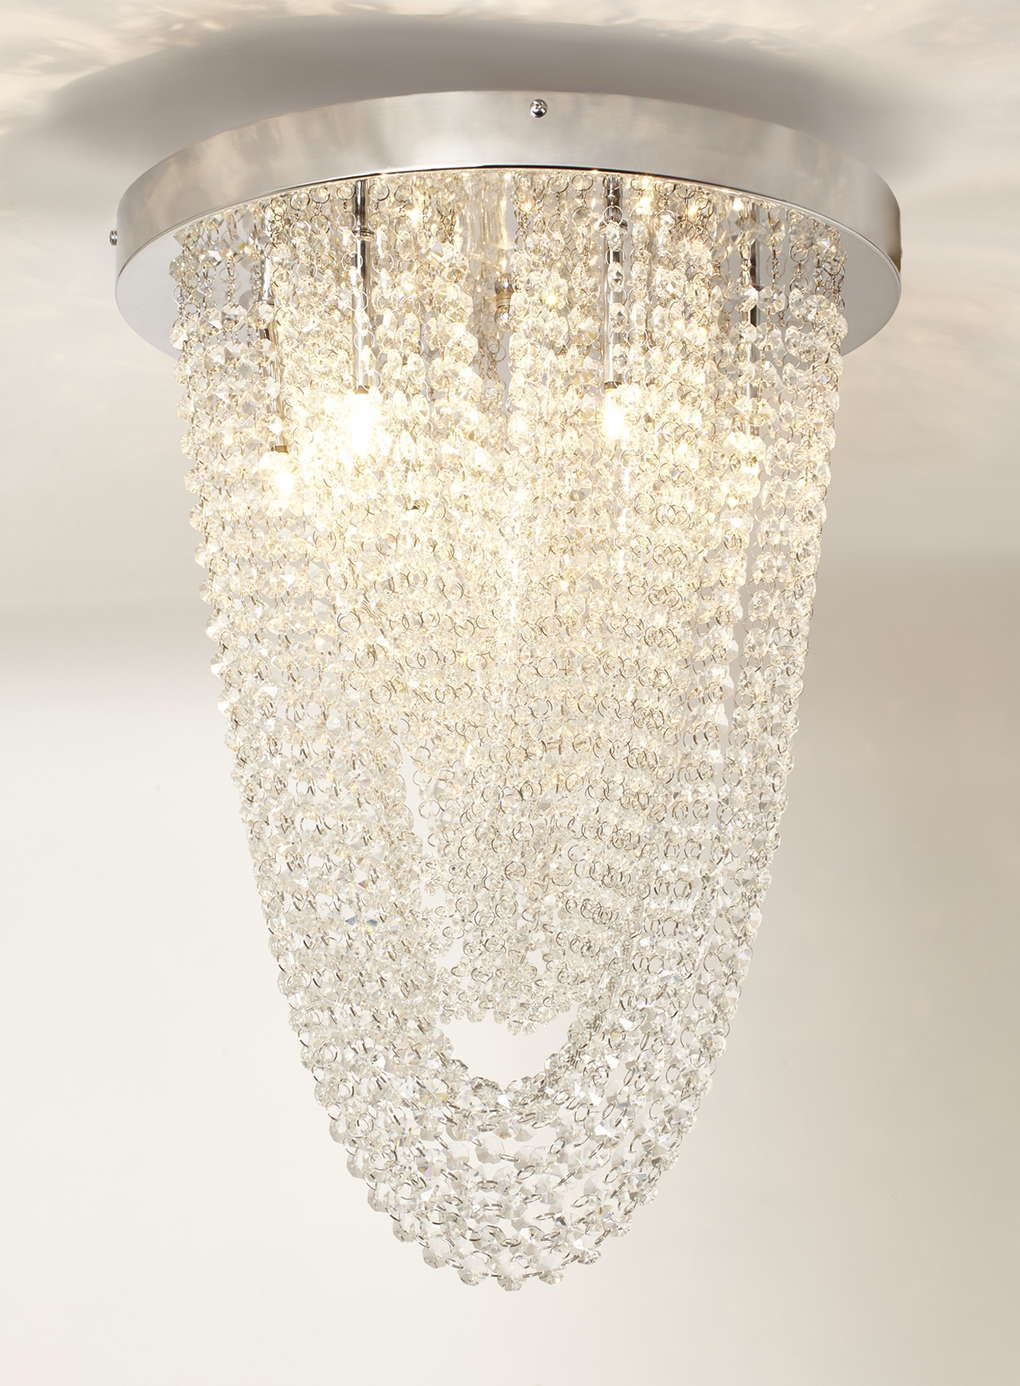 Irie Flush Ceiling Light - BHS | New salon | Pinterest | Bhs ...